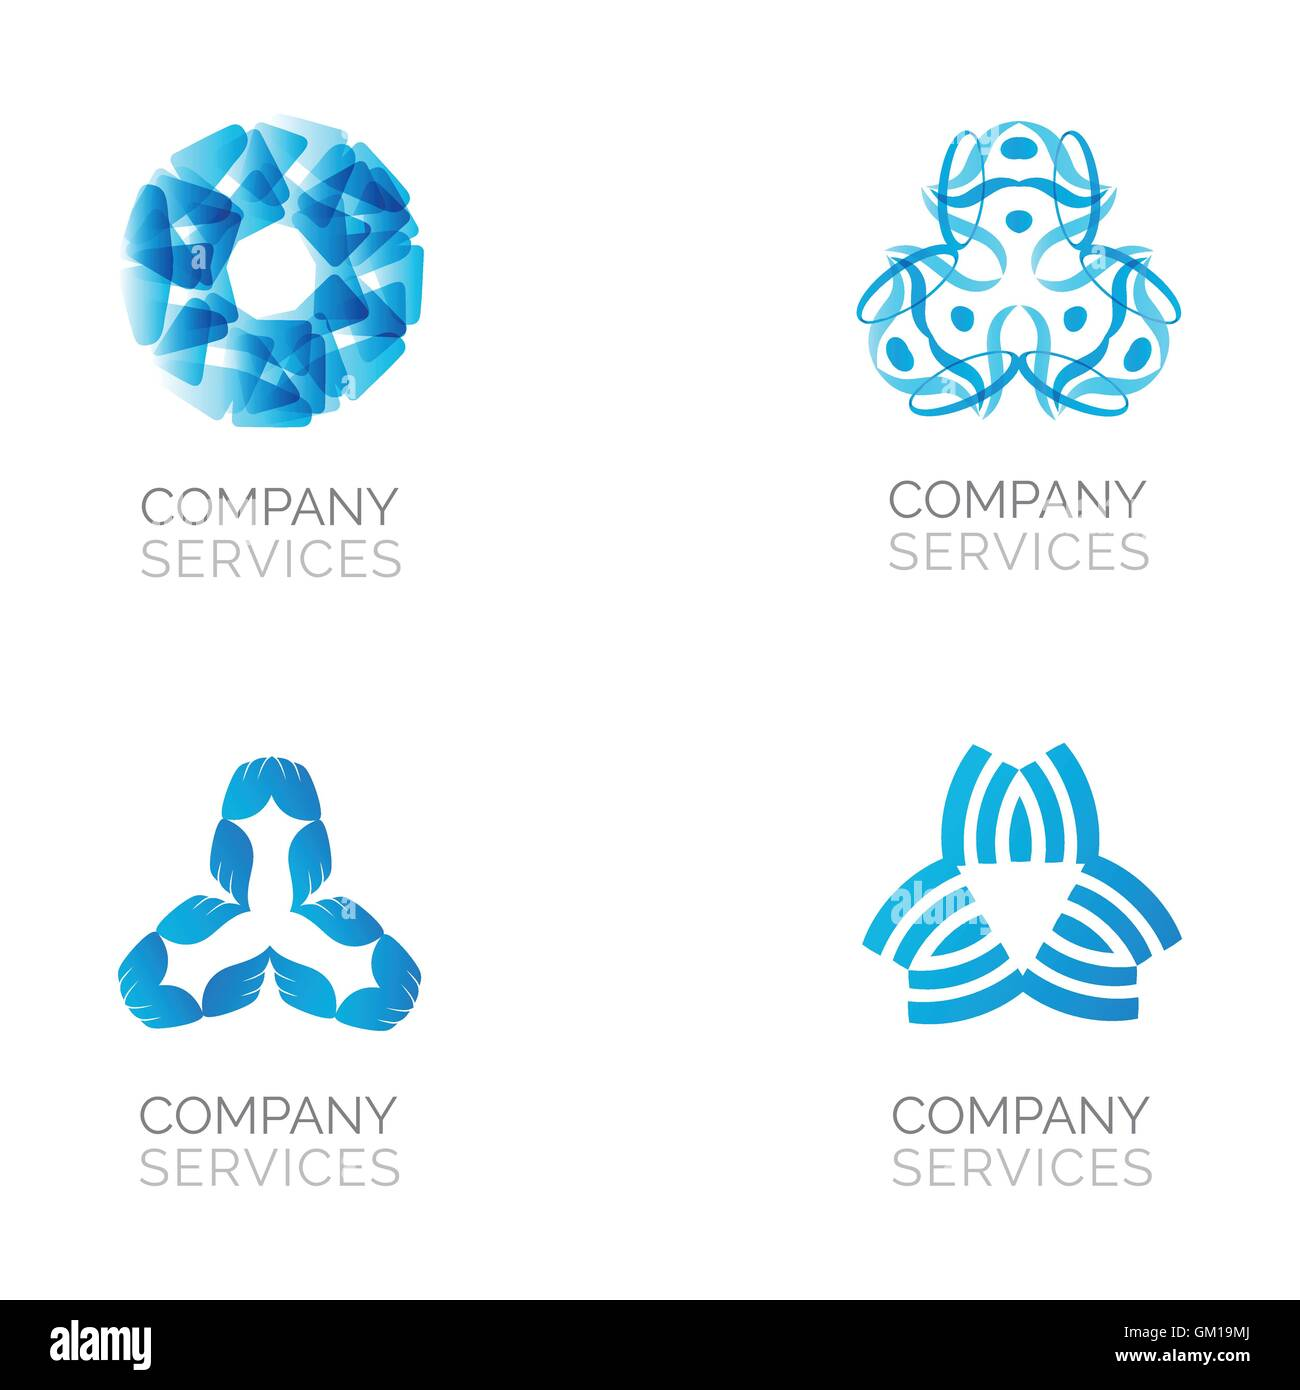 Set of four abstract blue logos. Vector logotypes with spiral, rhombus, crossed and circle elements. - Stock Image